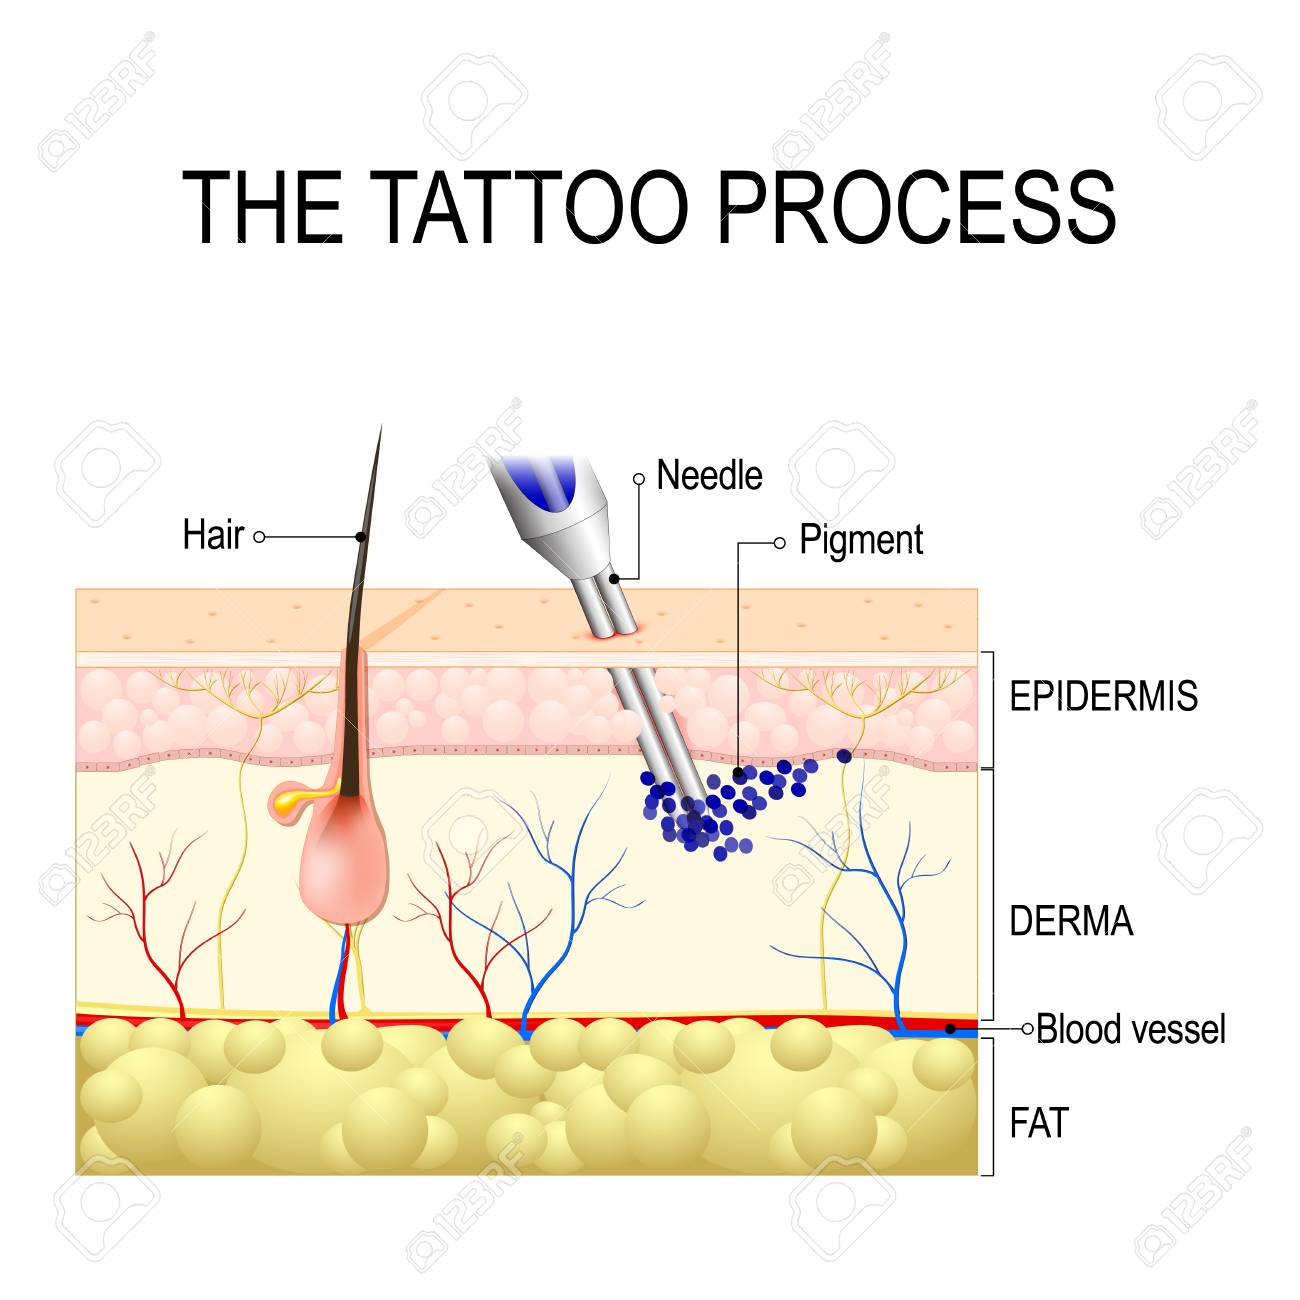 hight resolution of make a tattoo how does it work tattooing process close up stock vector